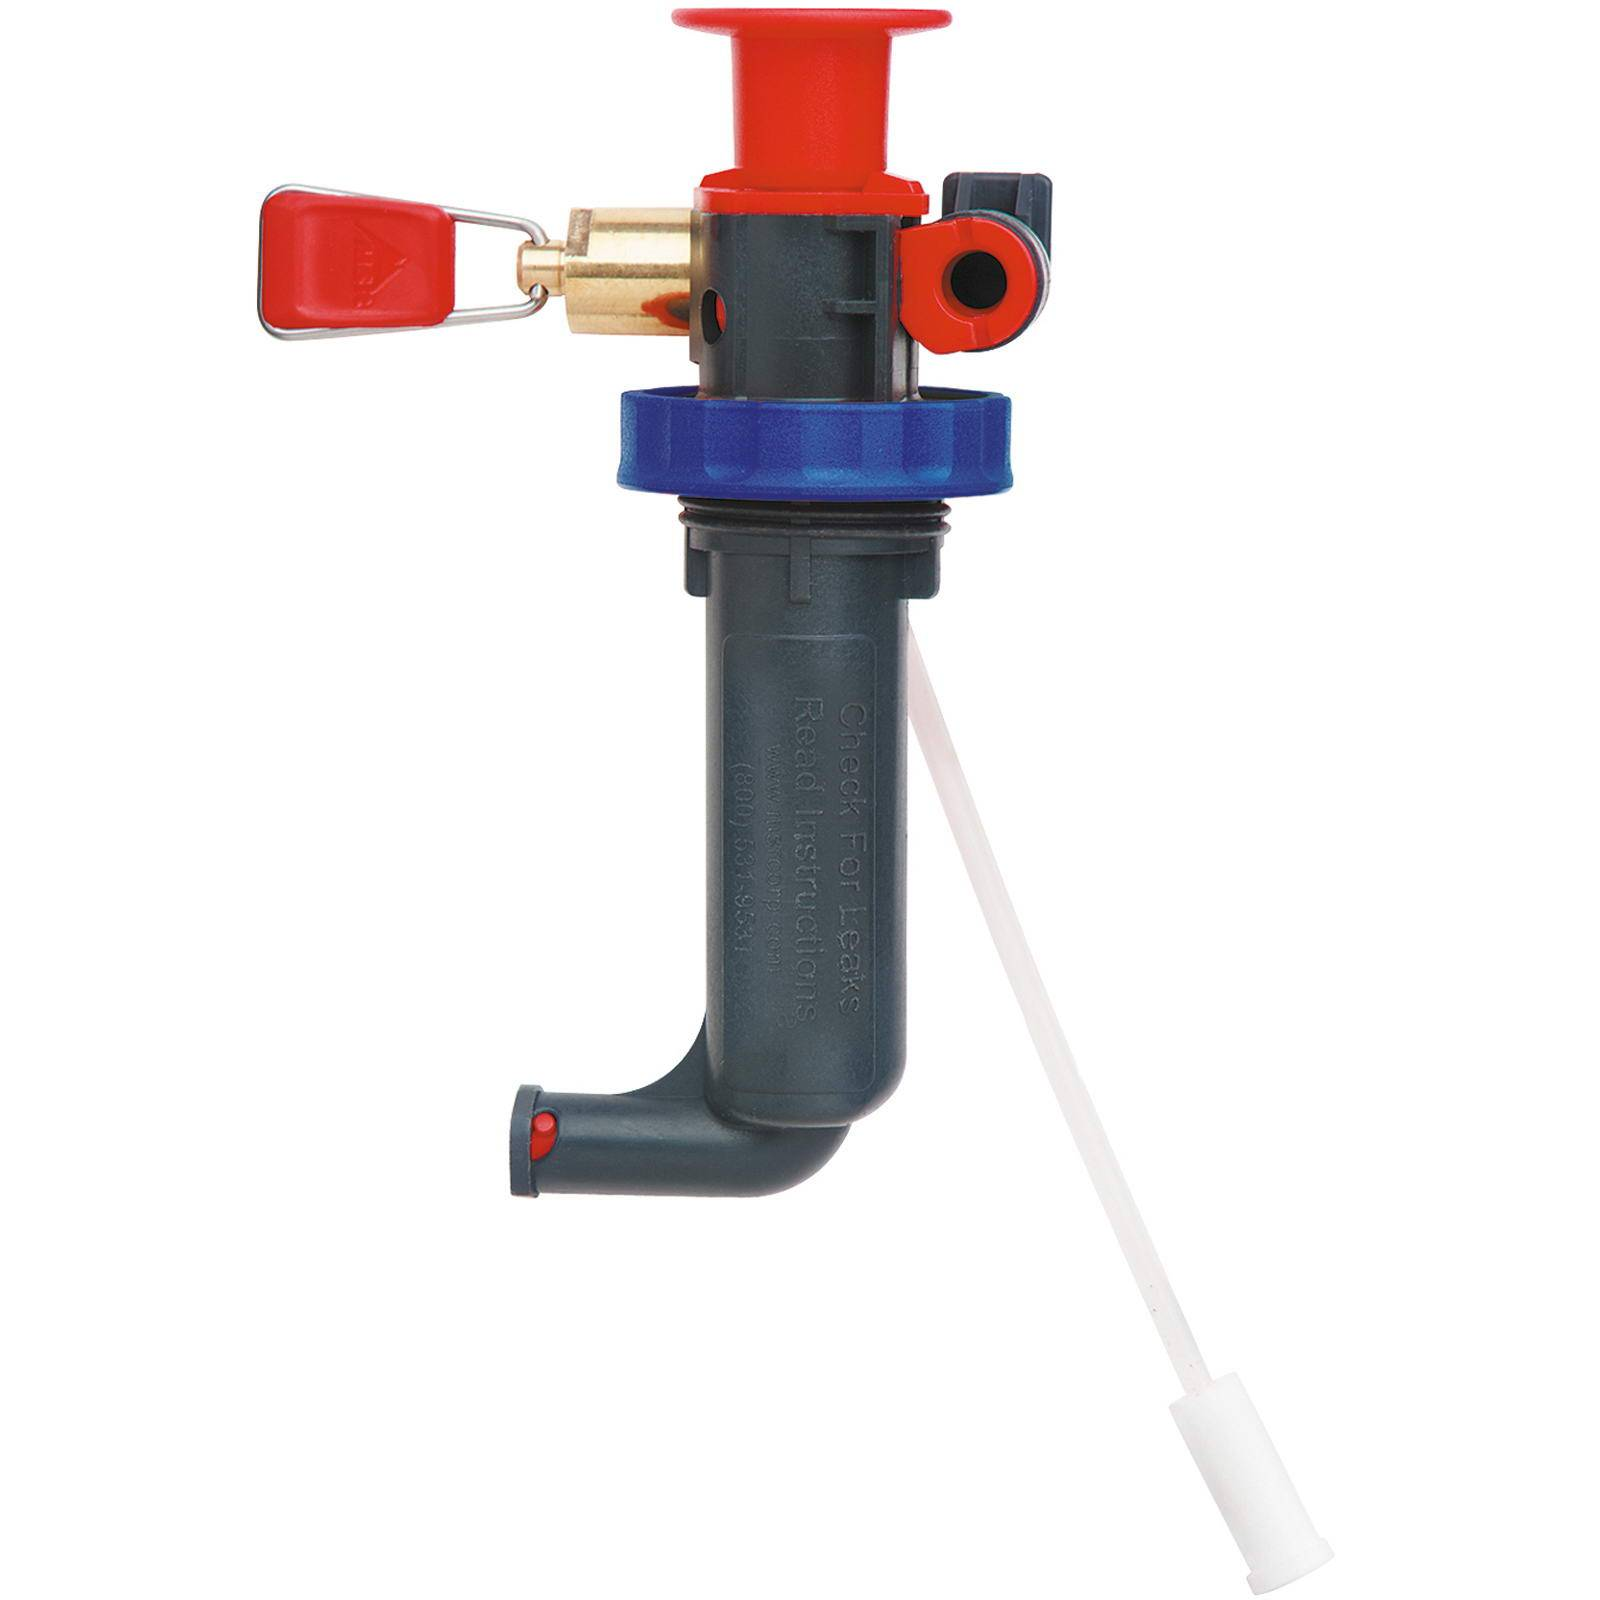 MSR Artic Fuel Pump - Brennstoffpumpe